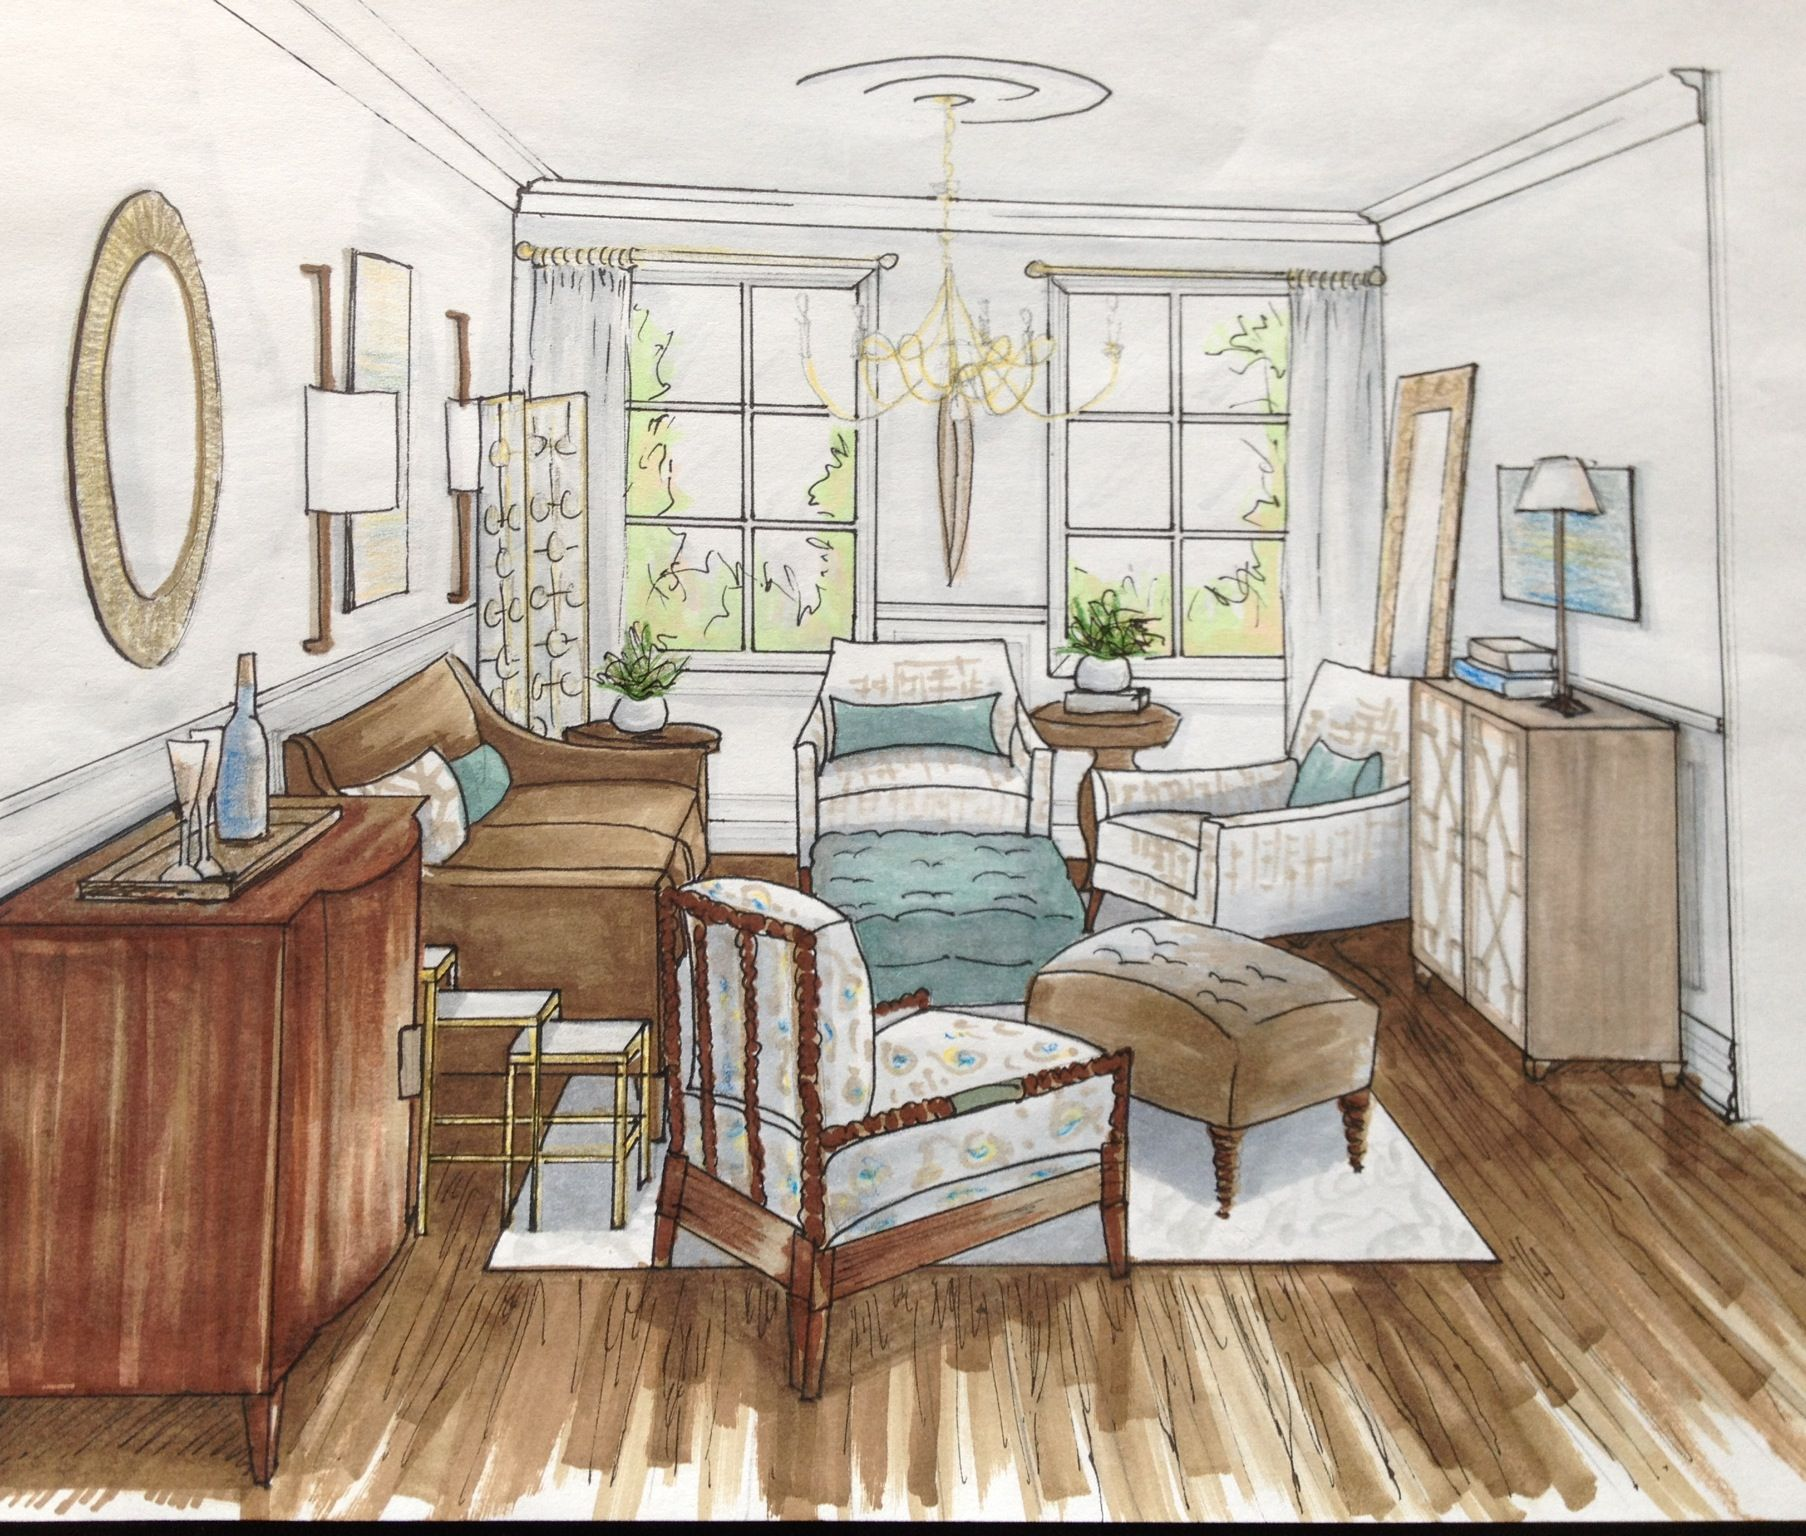 Living Room Sketch Interior Design Sketches Interior Design